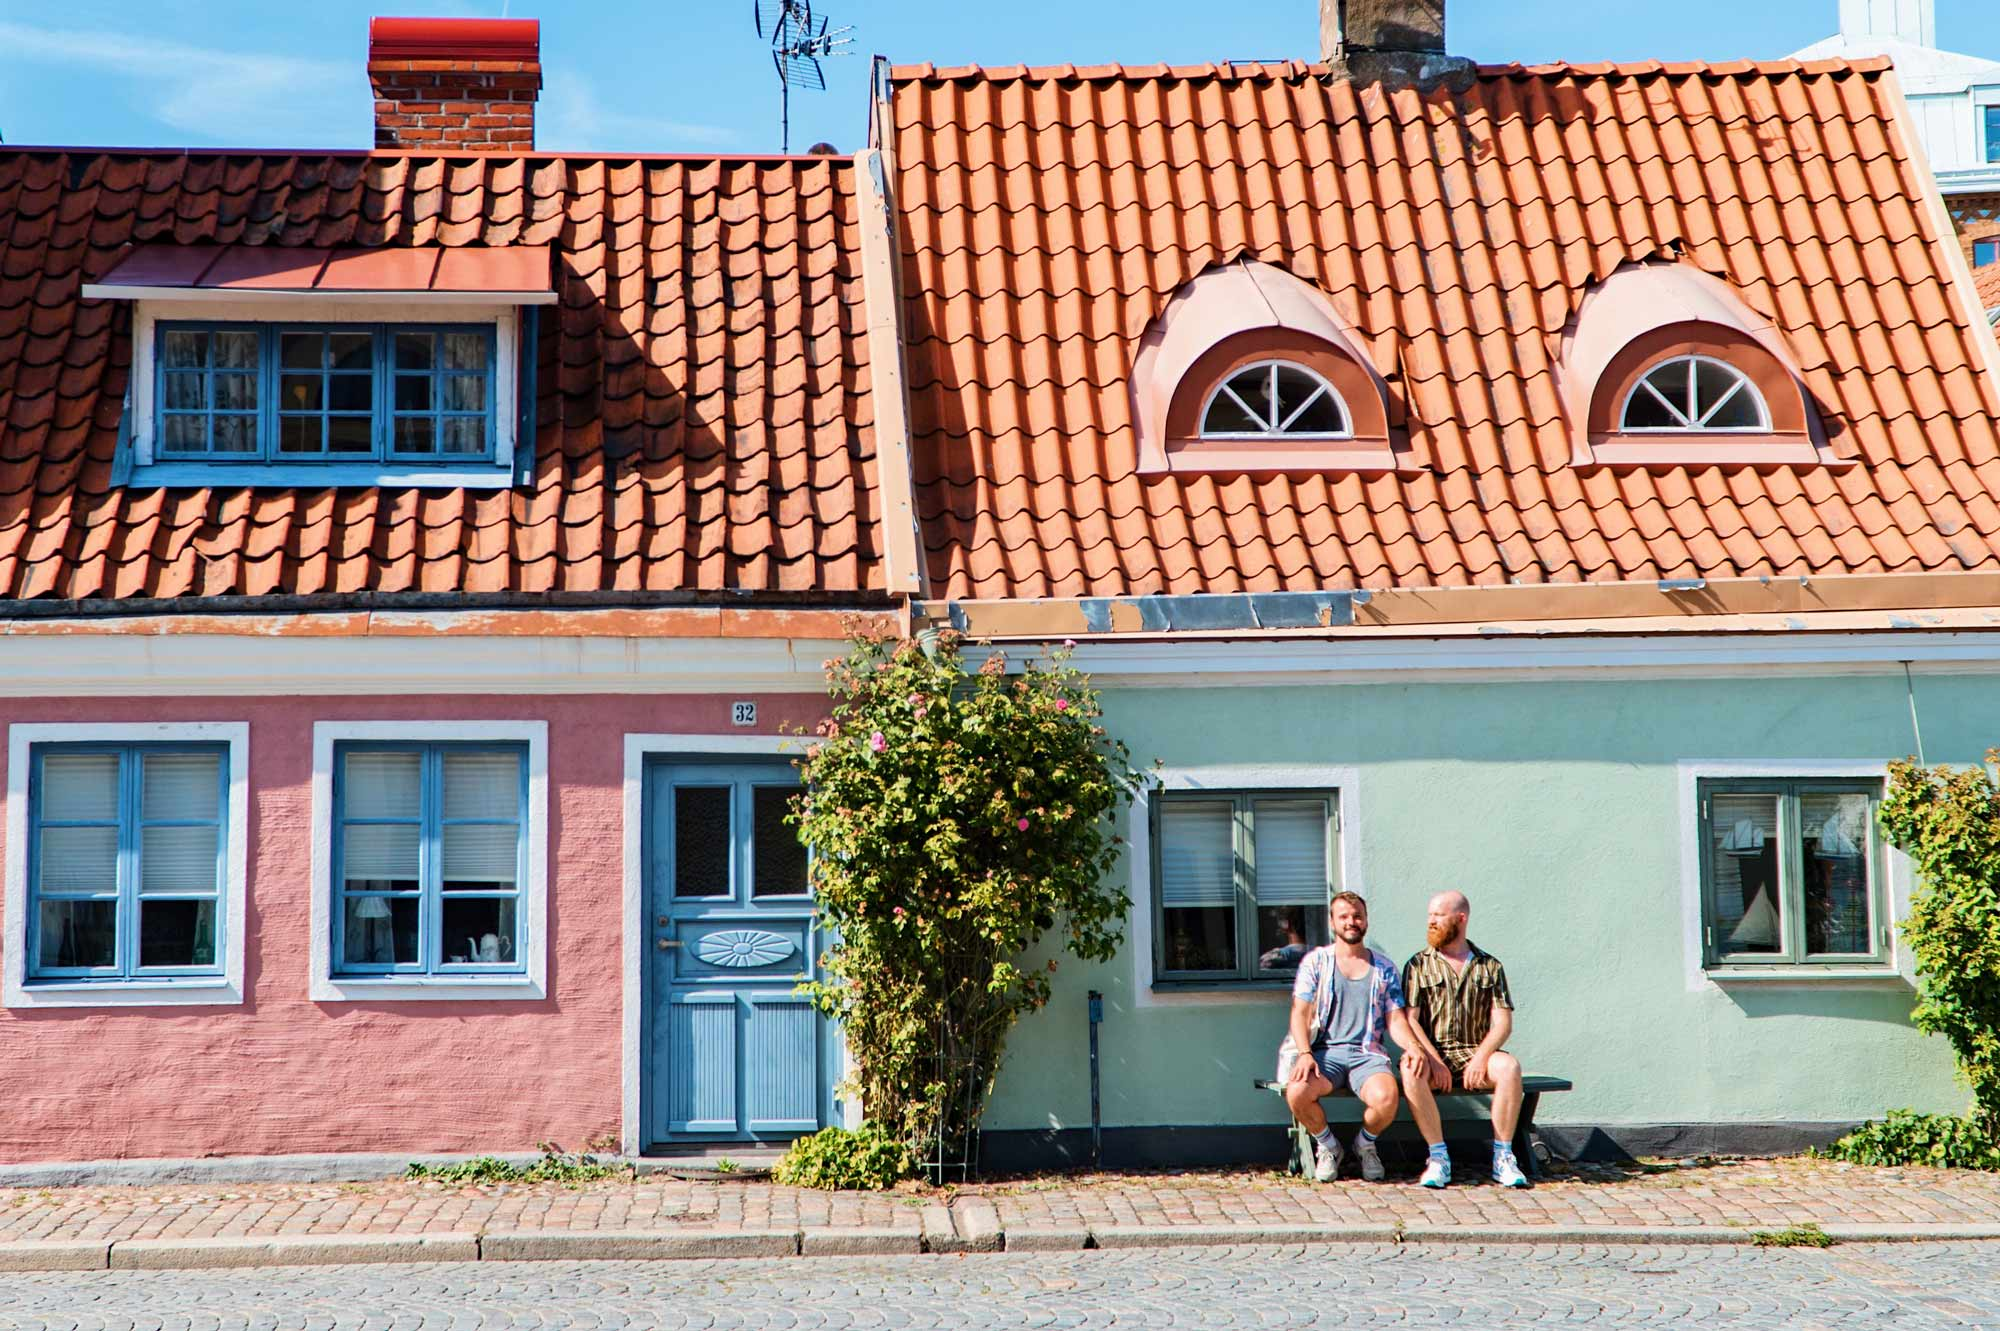 Gay Summer Road Trip Skåne Ystad is known for its colorful houses surrounded by flowers © Coupleofmen.com